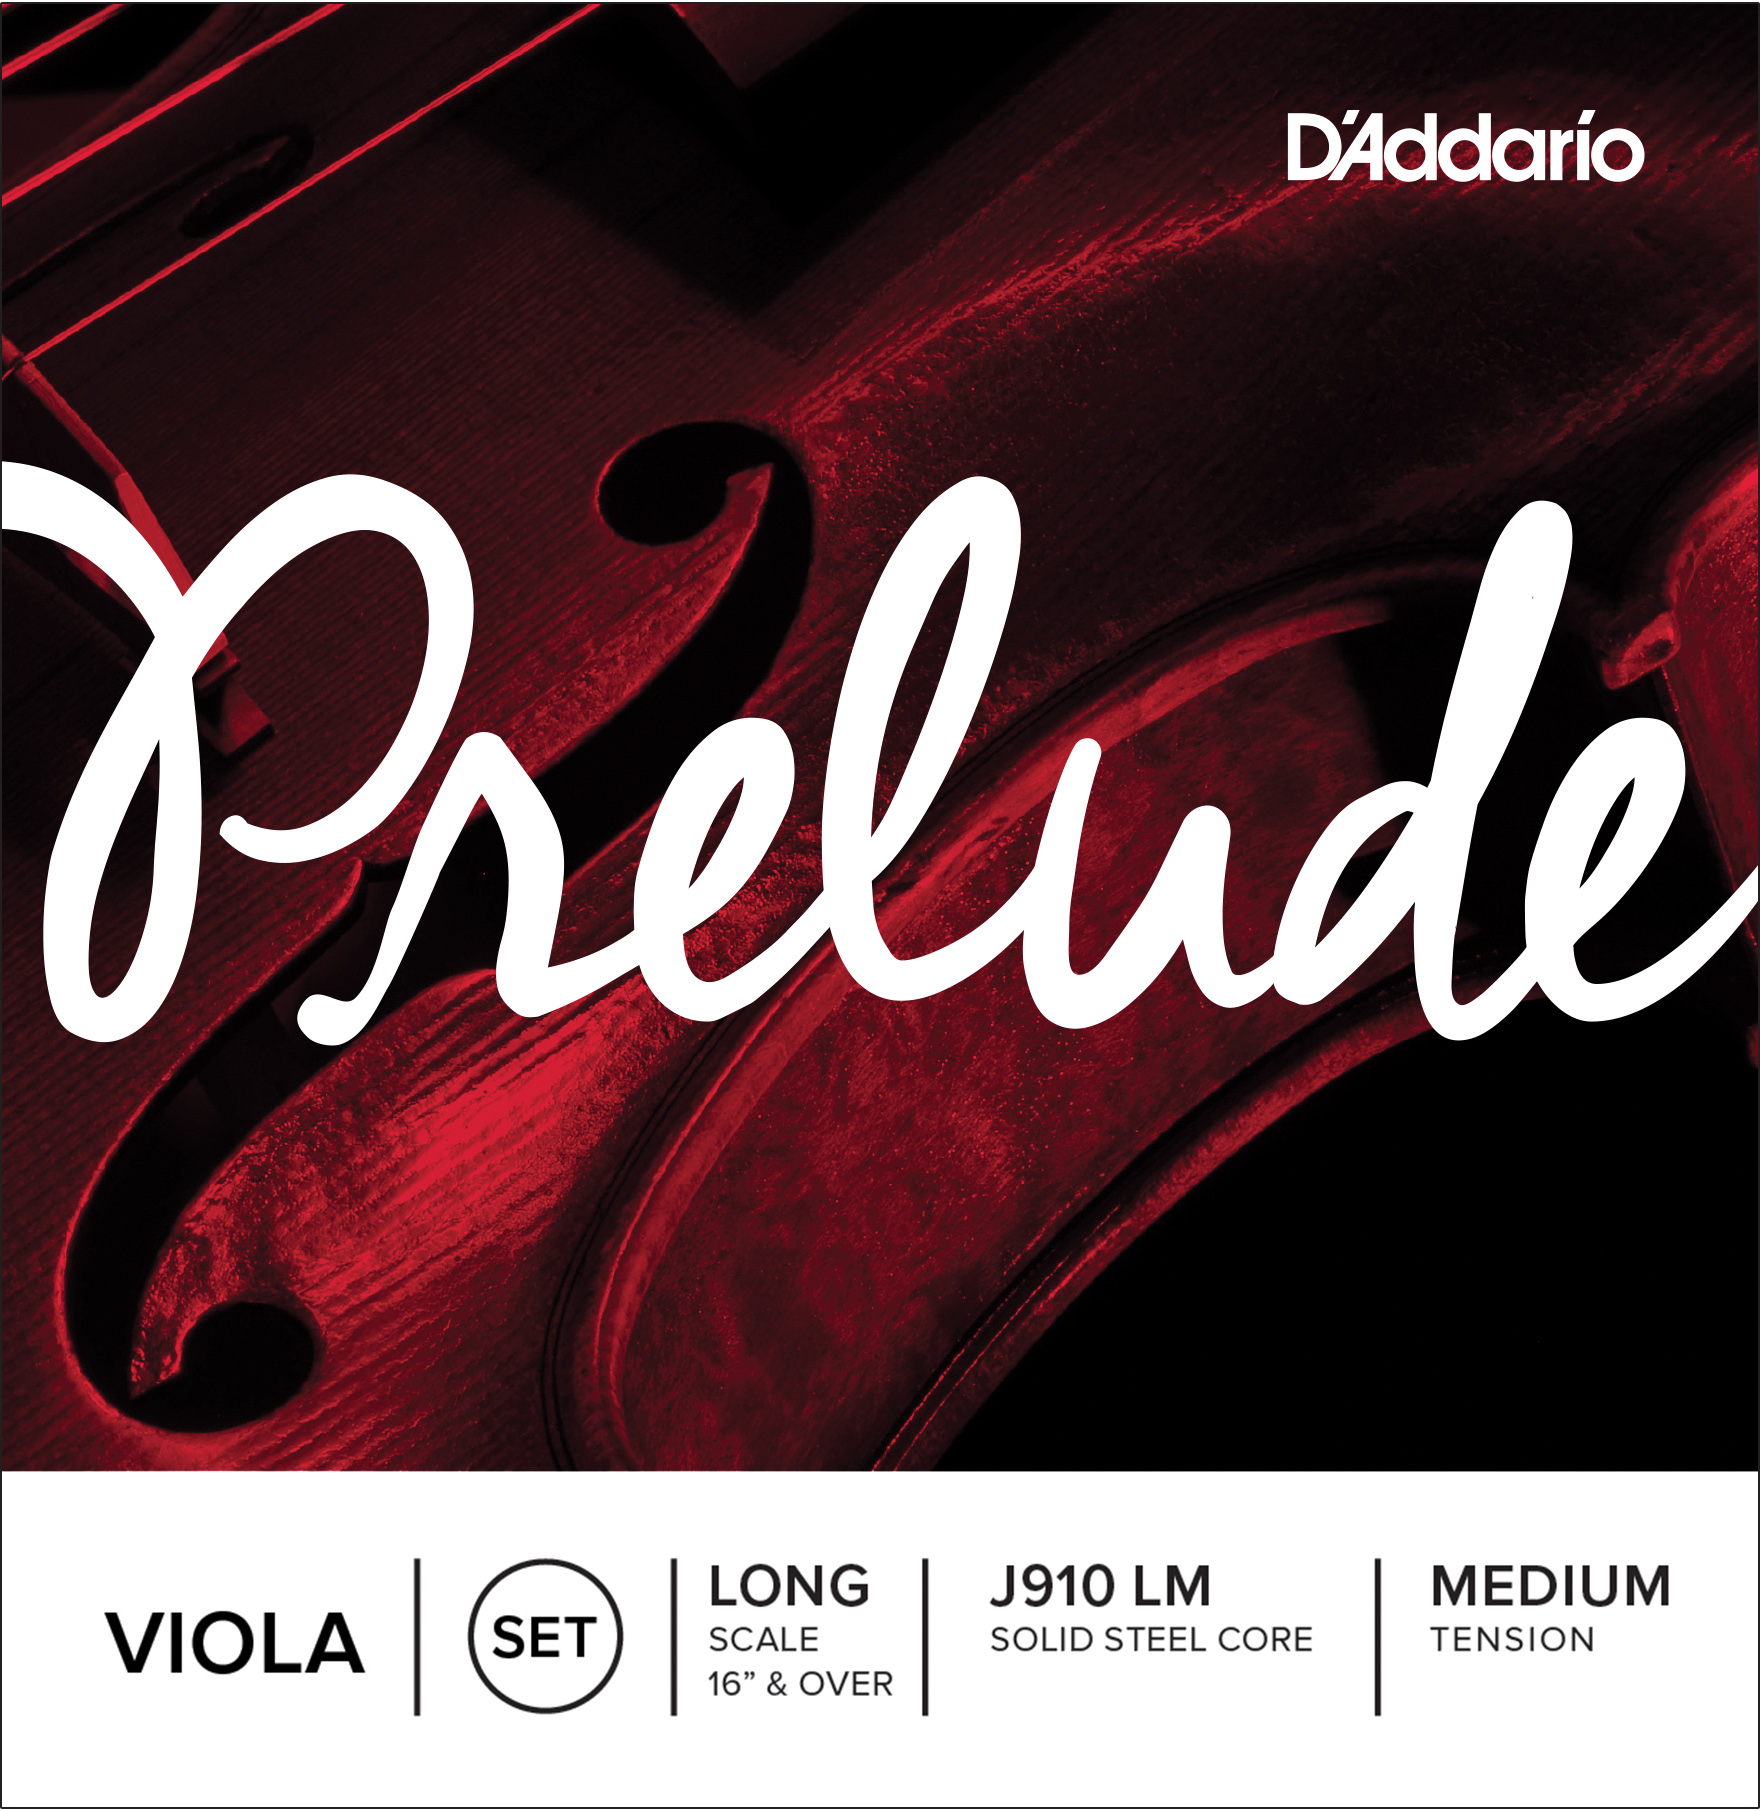 DADD PRELUDE VIOLA LONG SCALE MEDIUM TENSION